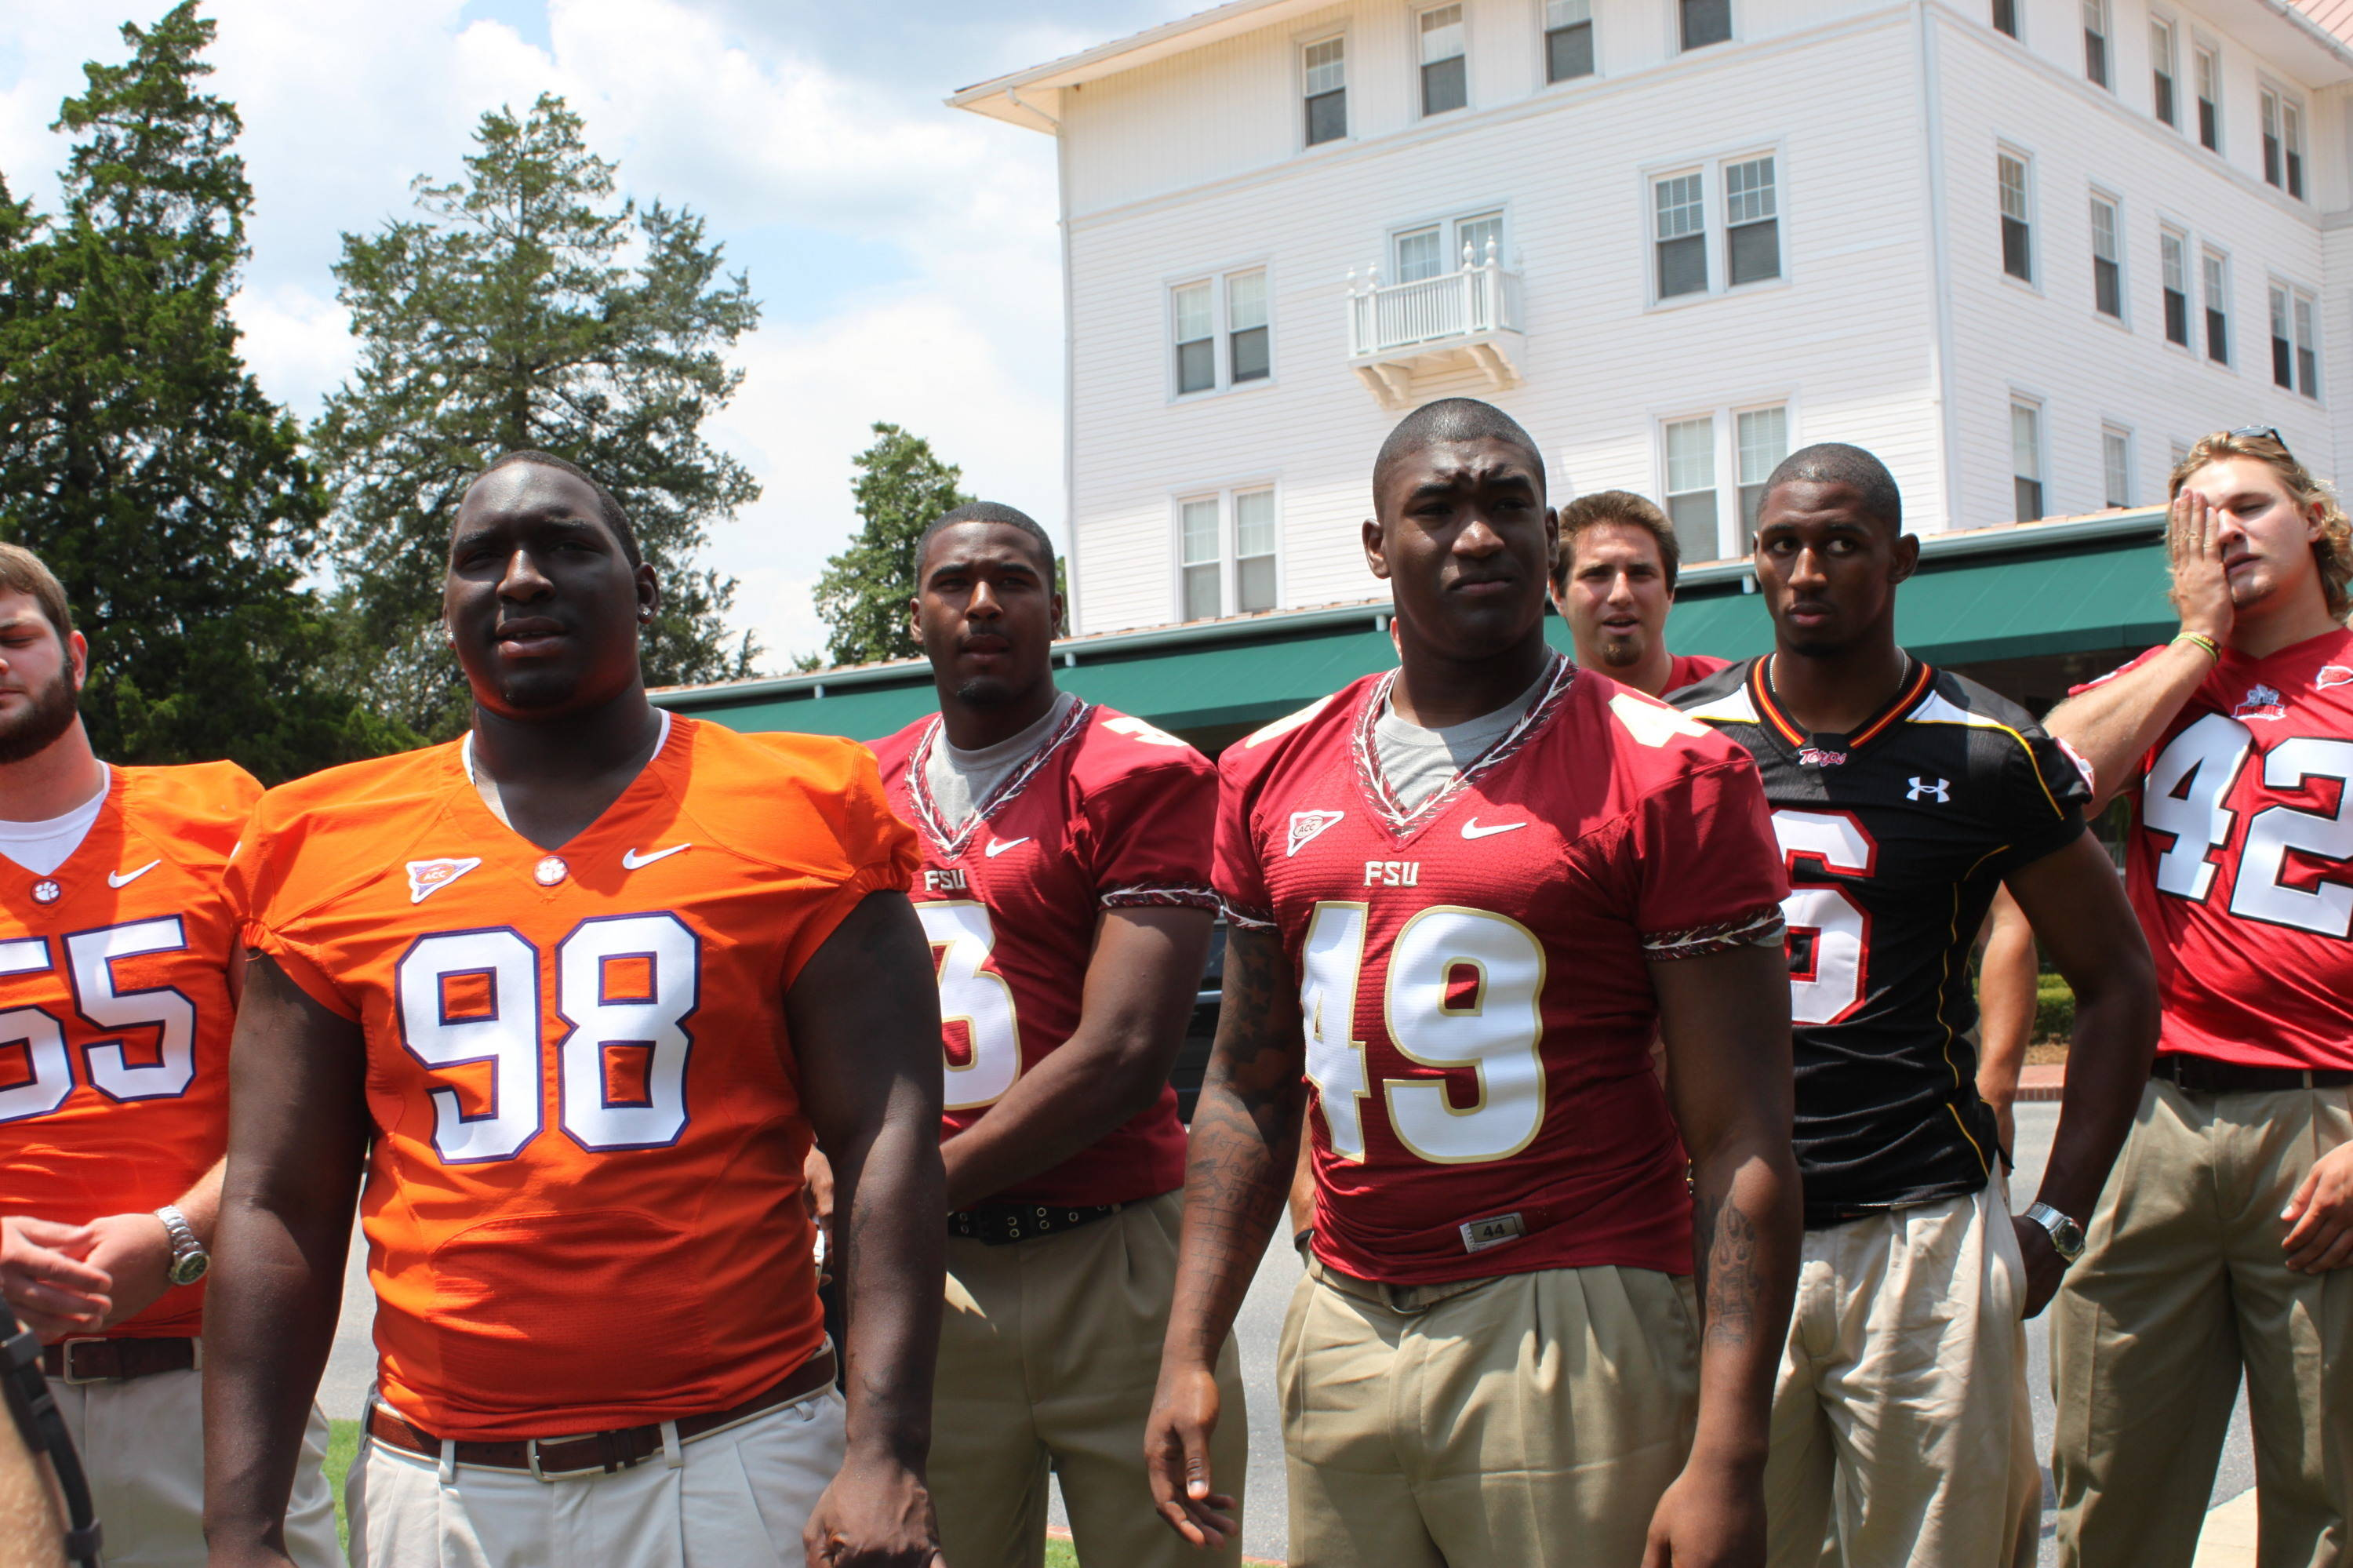 Brandon Jenkins and EJ Manuel on the lawn at Pinehurst for the ACC Kickoff group photo.